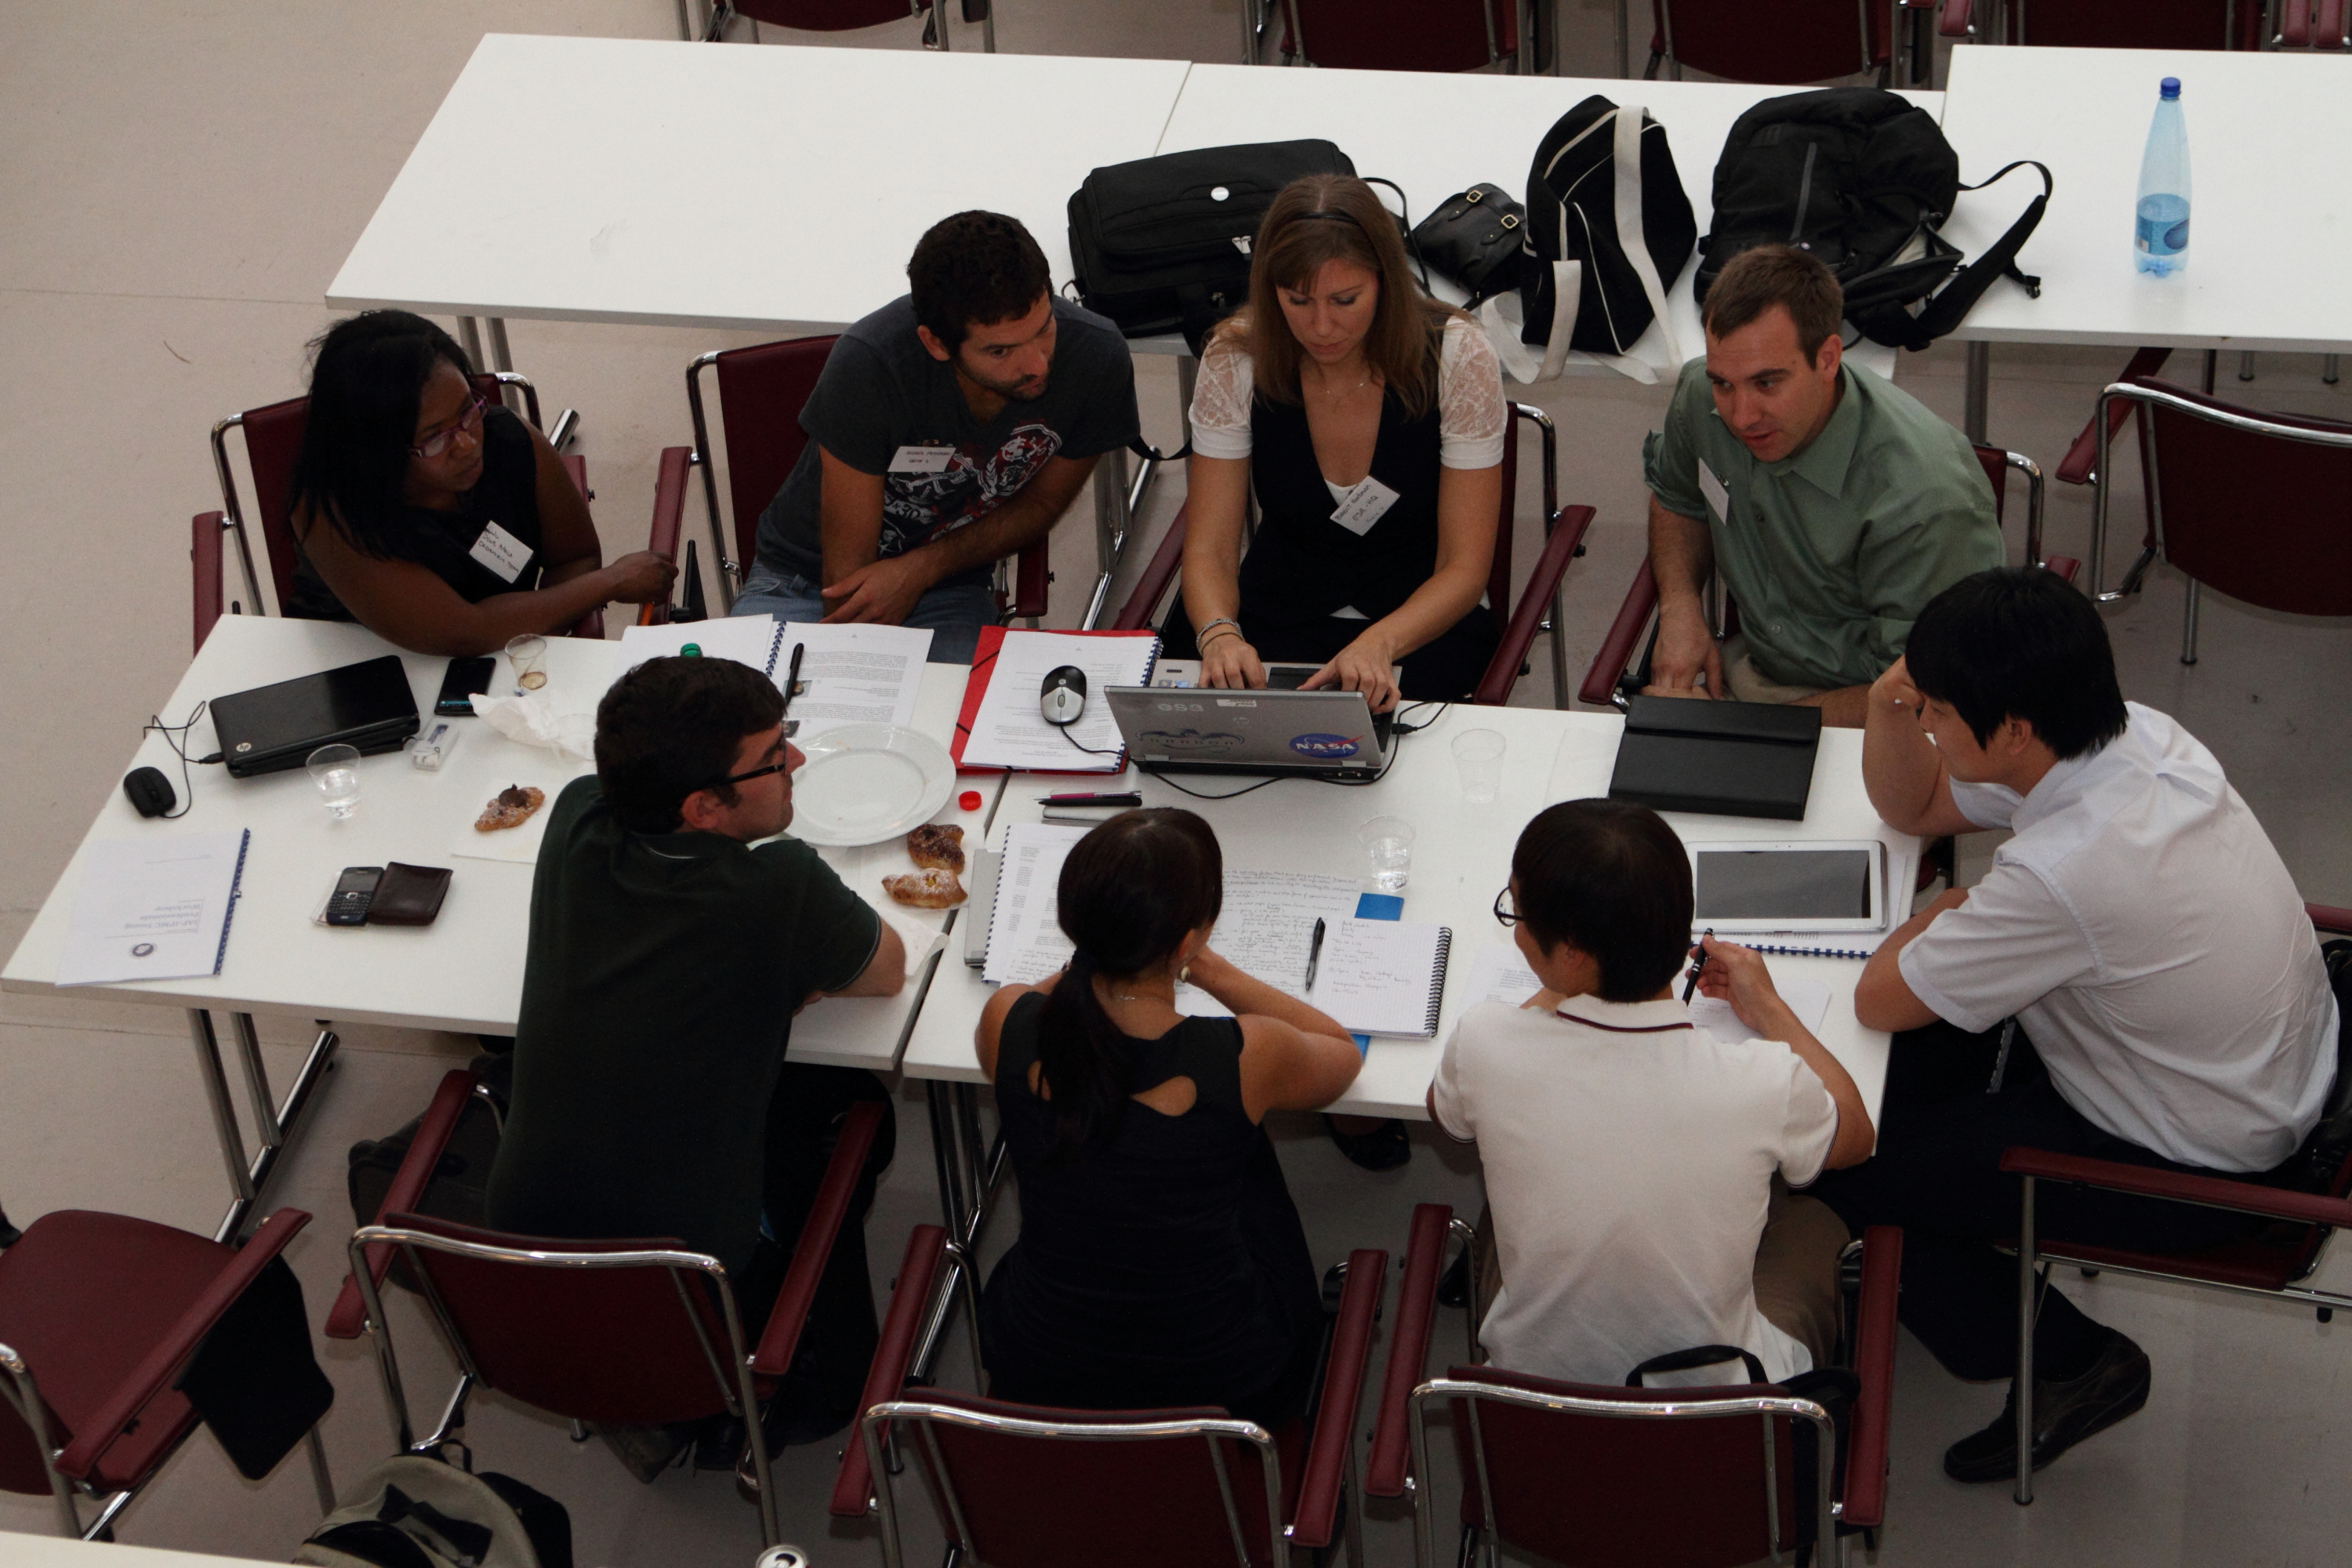 Delegates from South Korea, Italy, France, South Africa, and the United States discuss what motivates young professionals in the space industry at the inaugural IPMC Young Professionals Workshop in Naples, Italy on September 28, 2012.